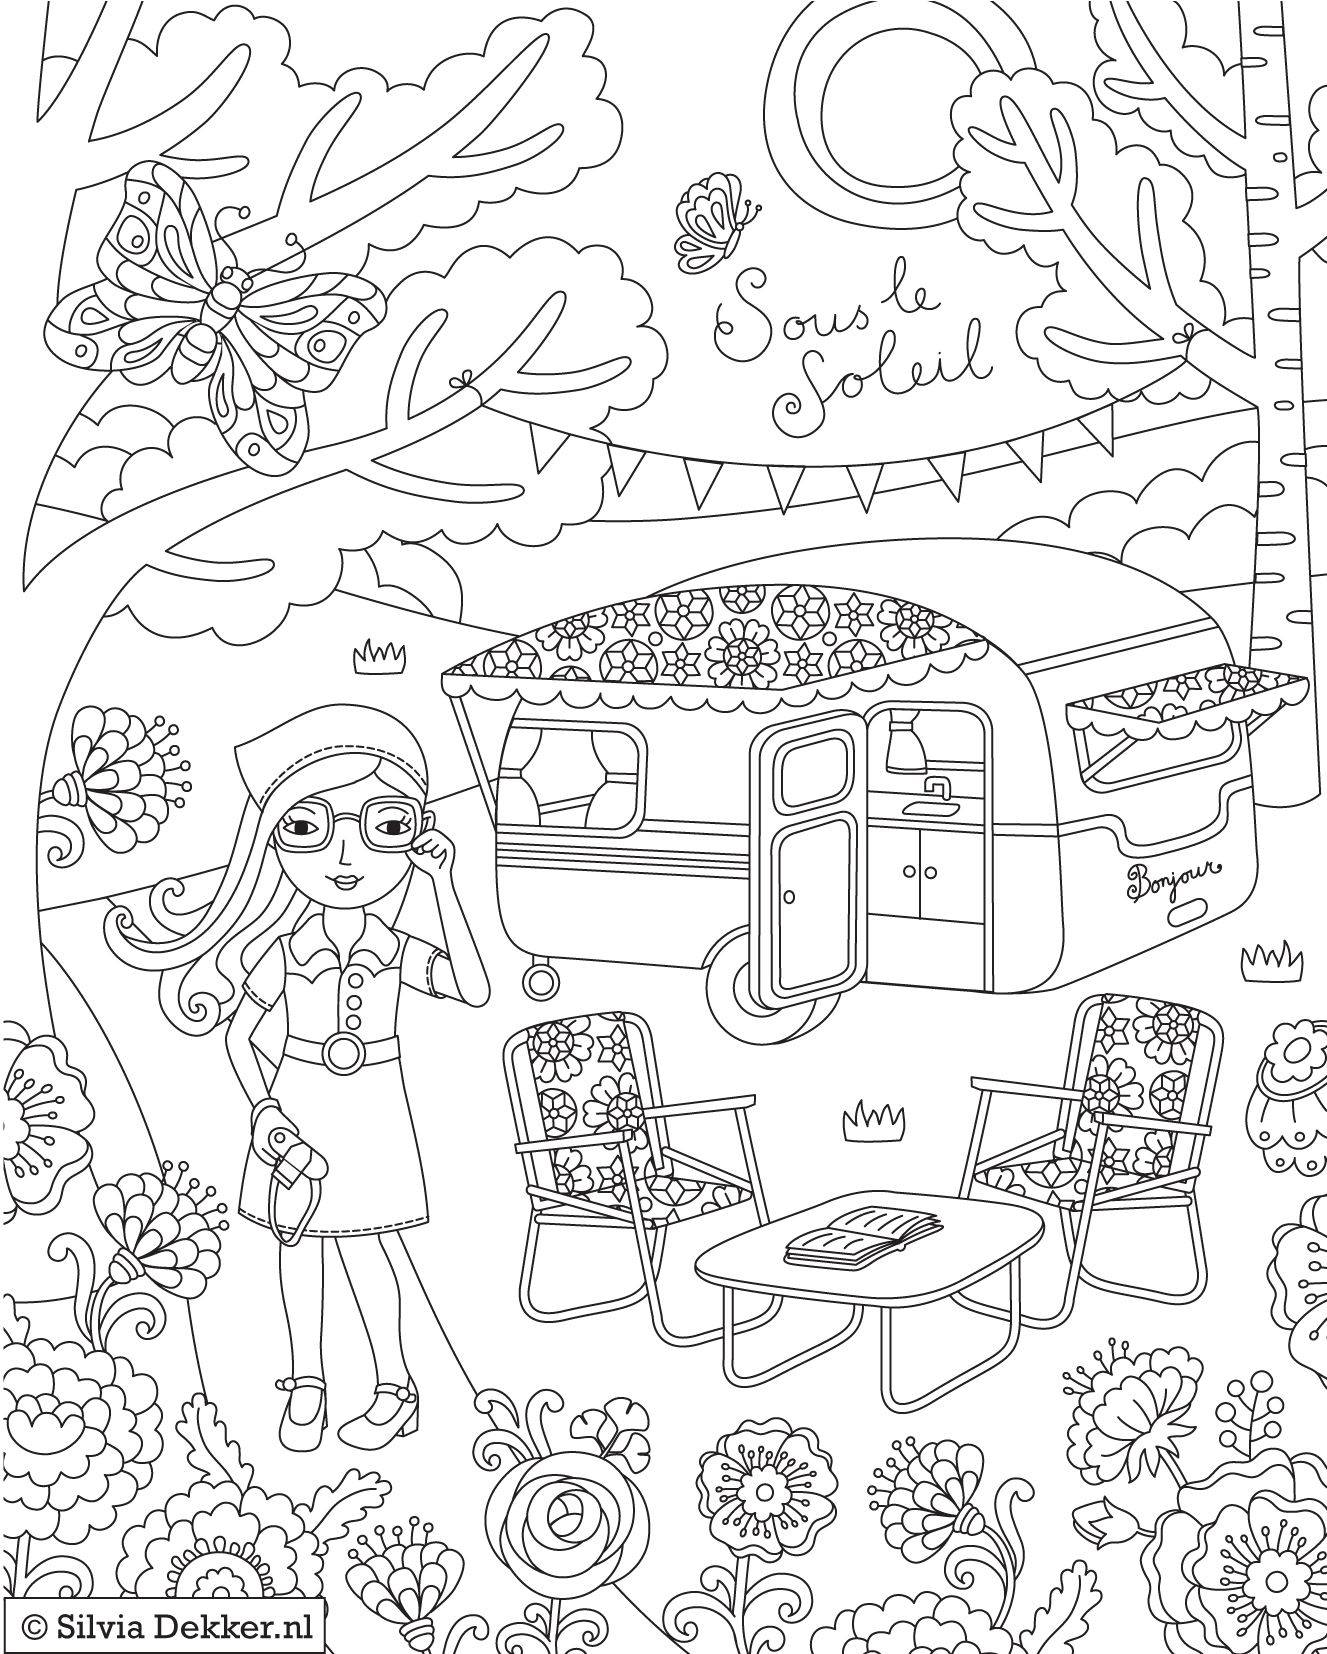 Camping Coloring Page For Flow Magazine By Silvia Dekker Camping